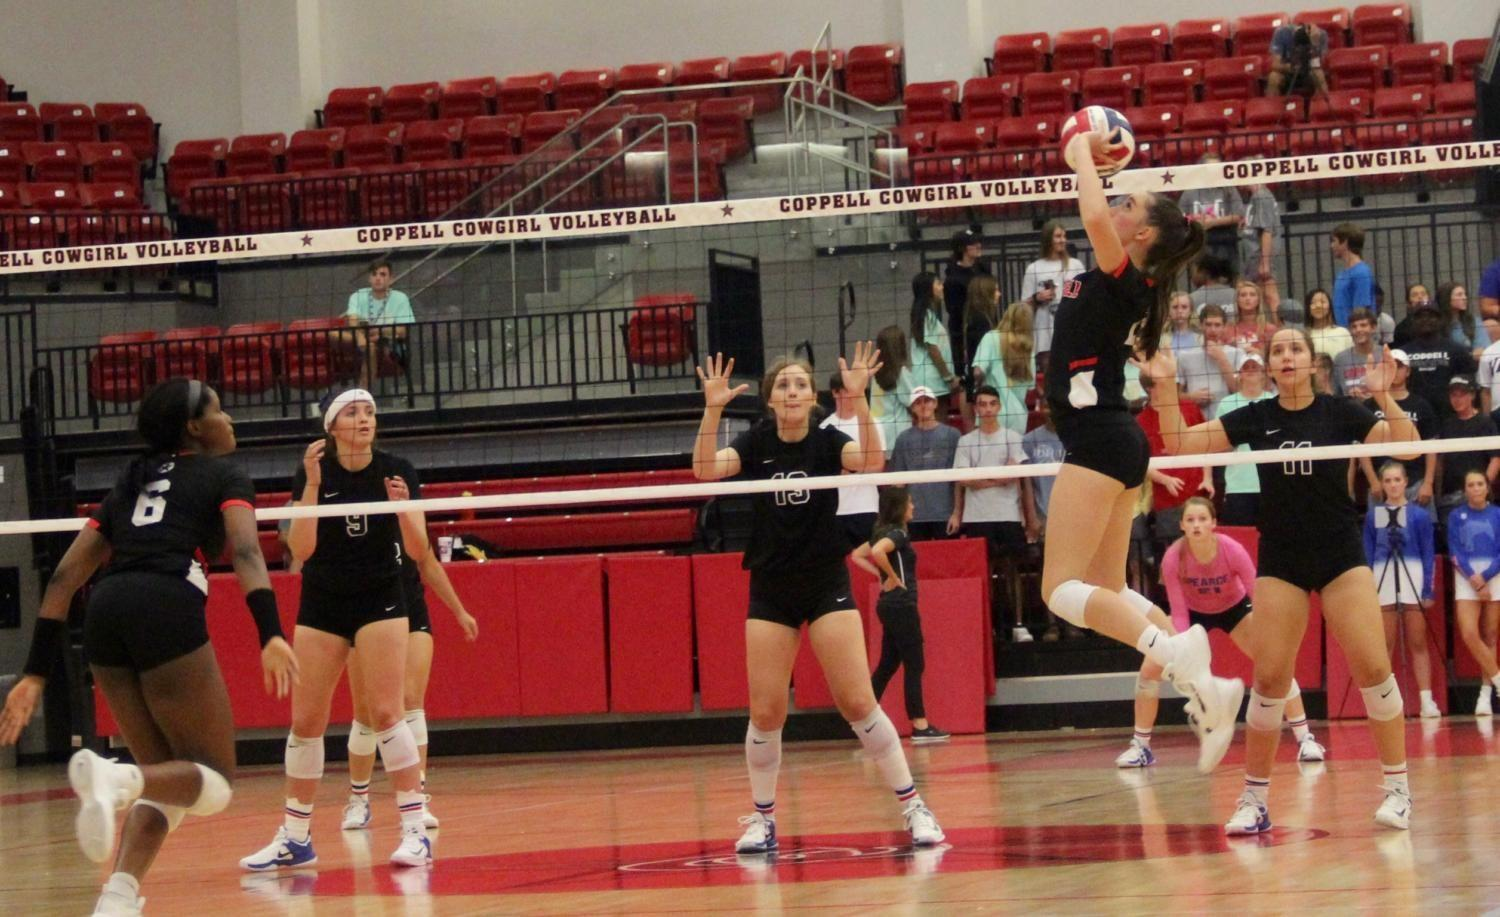 Coppell High School senior defensive specialist Ava Racz sets to junior Amarachi Osuji during last night's match at the Coppell High School Arena against Pearce on Tuesday night. The Cowgirls defeated the Lady Mustangs, 25-21, 25-23, 24-26, 25-14, in their first home district game.